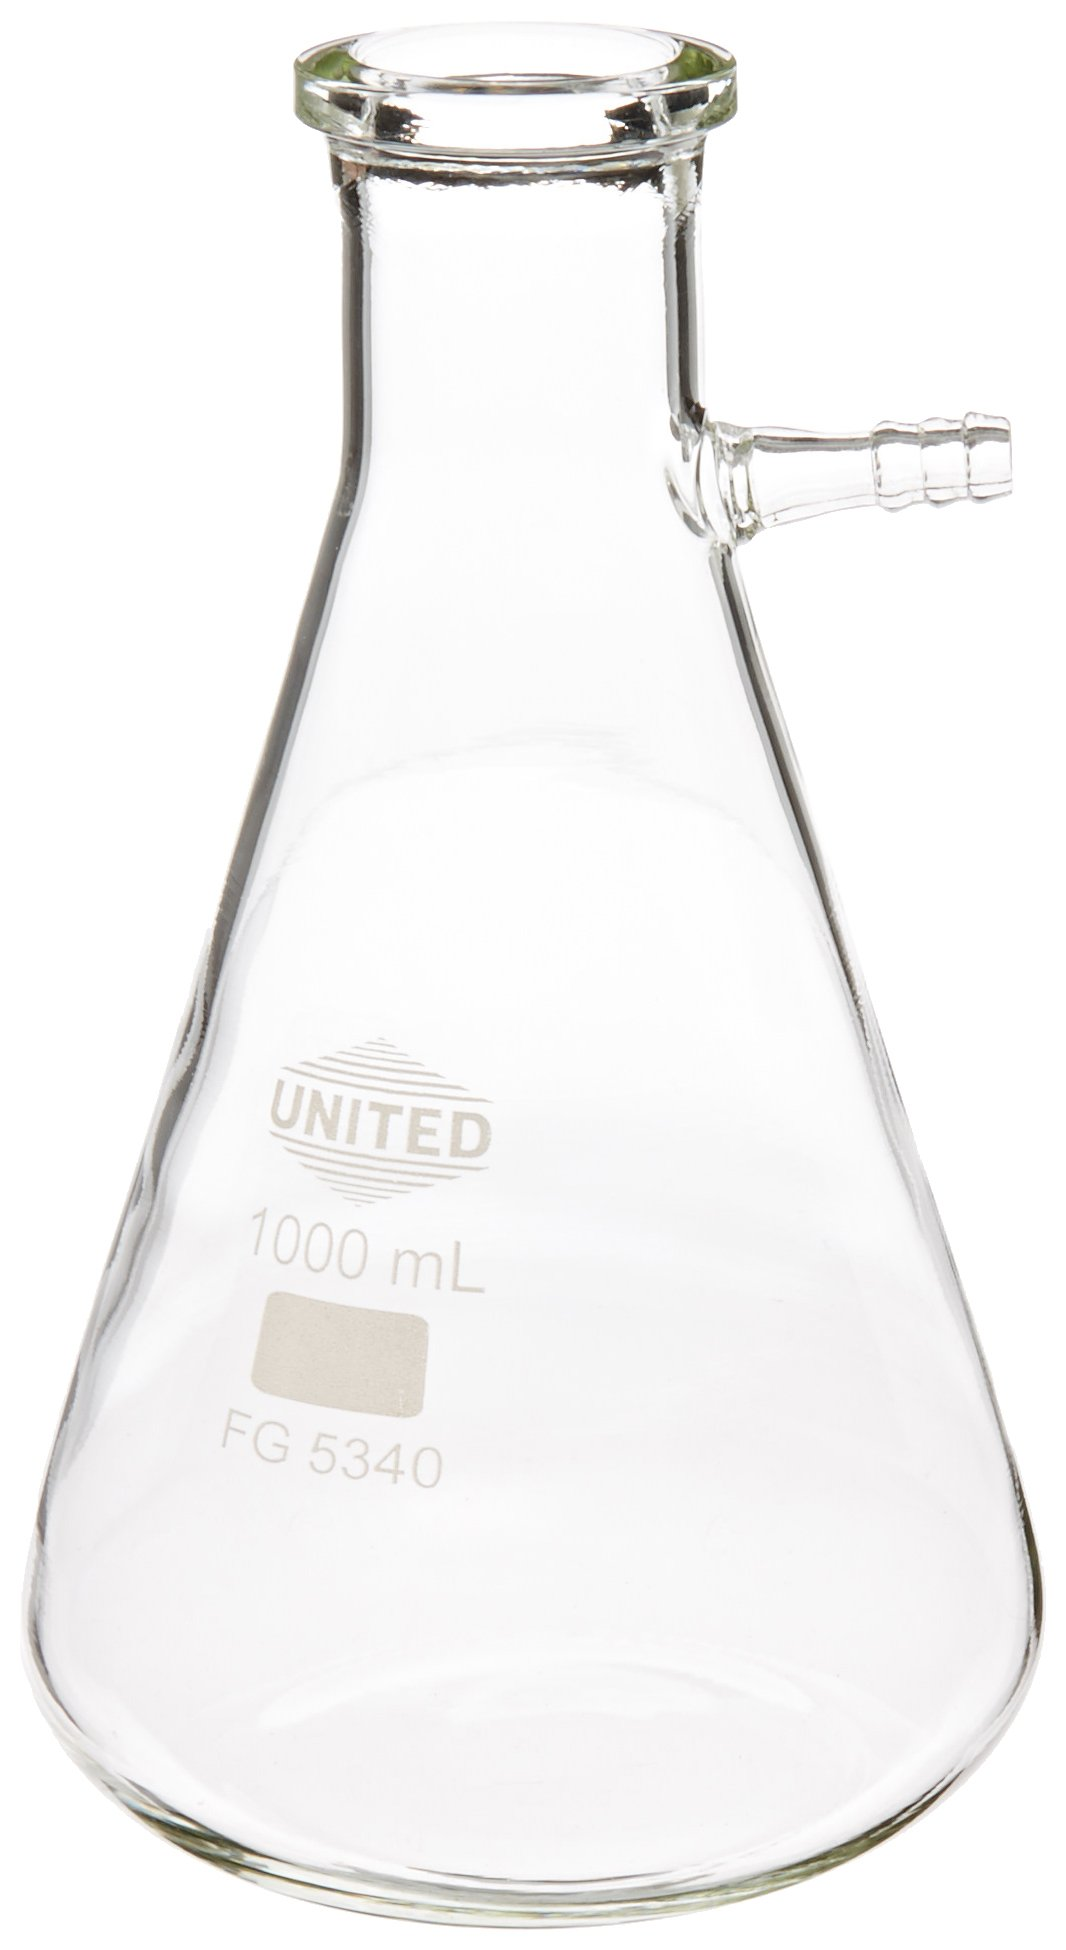 United Scientific FG5340-1000 Borosilicate Glass Heavy Wall Filtering Flask, Bolt Neck with Tubulation, 1000ml Capacity by United Scientific Supplies